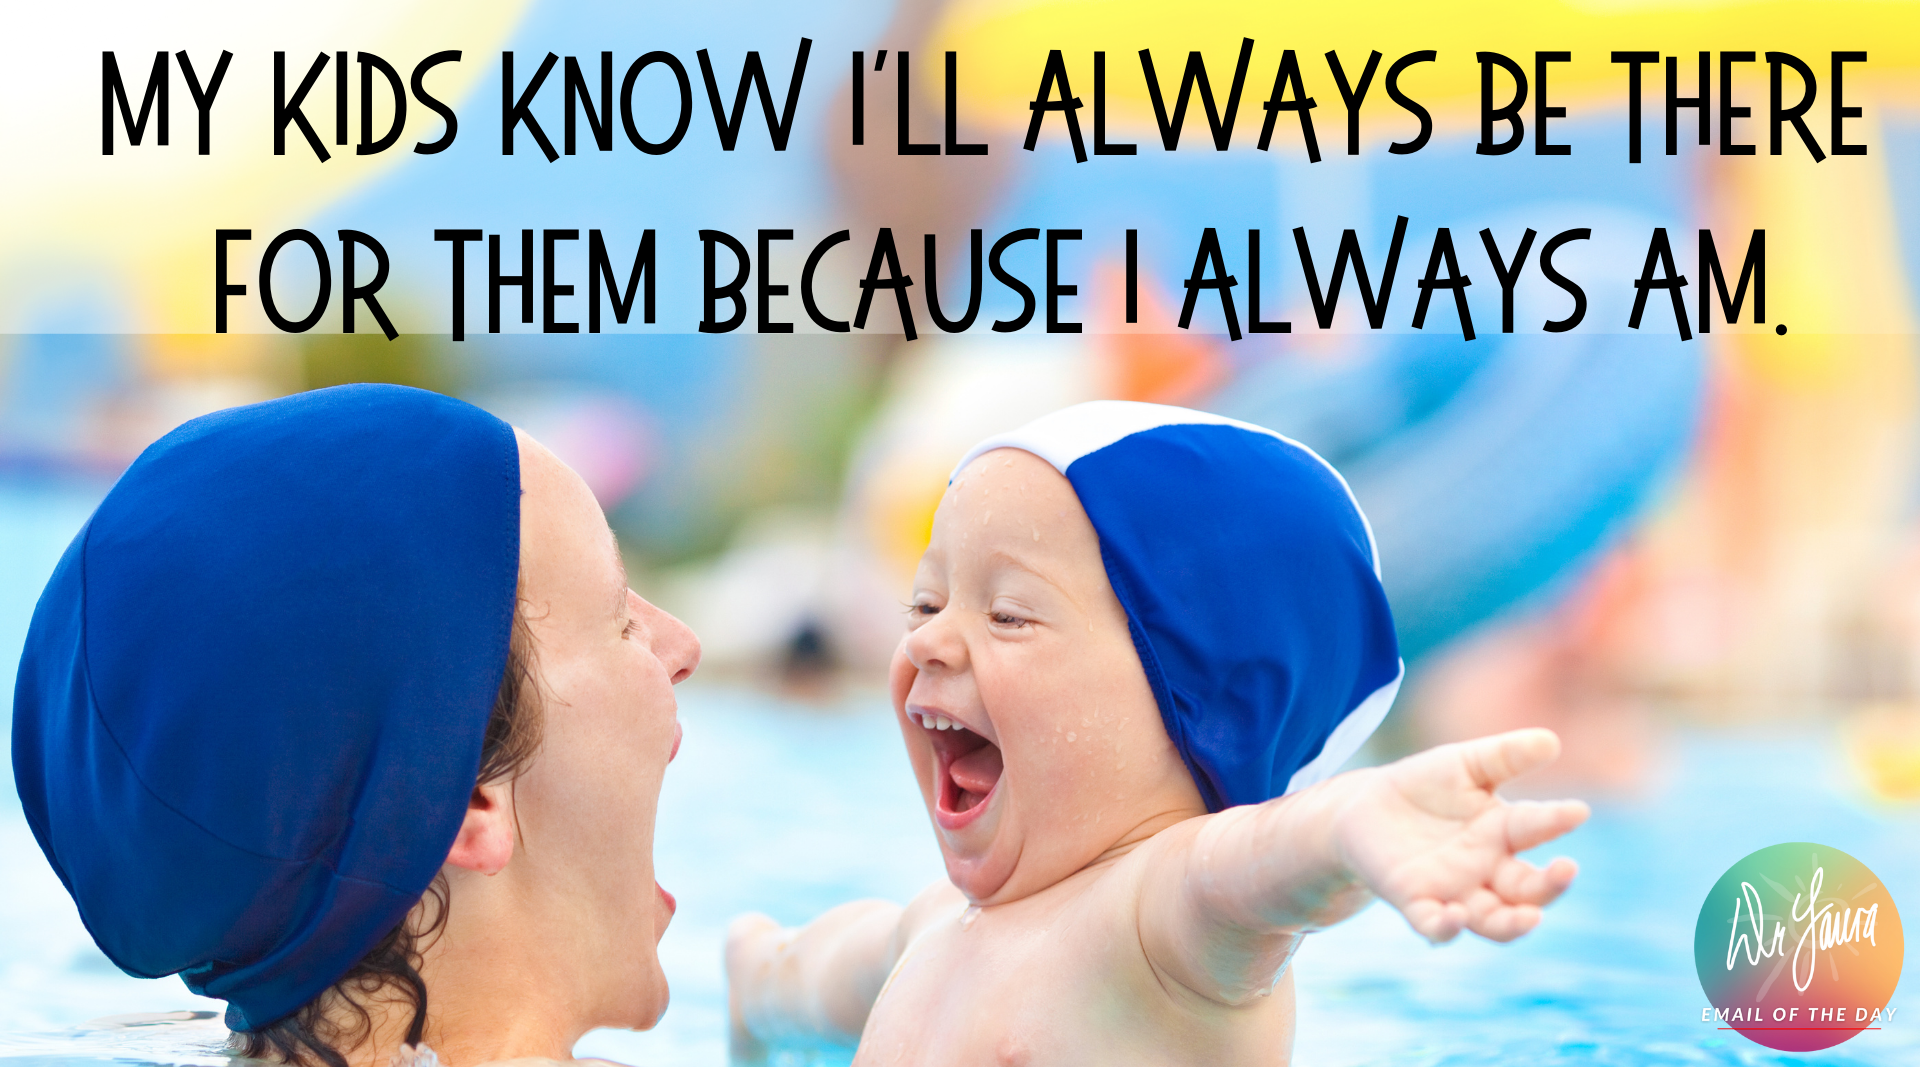 Email of the Day: I Am My Kids' Swim Mom